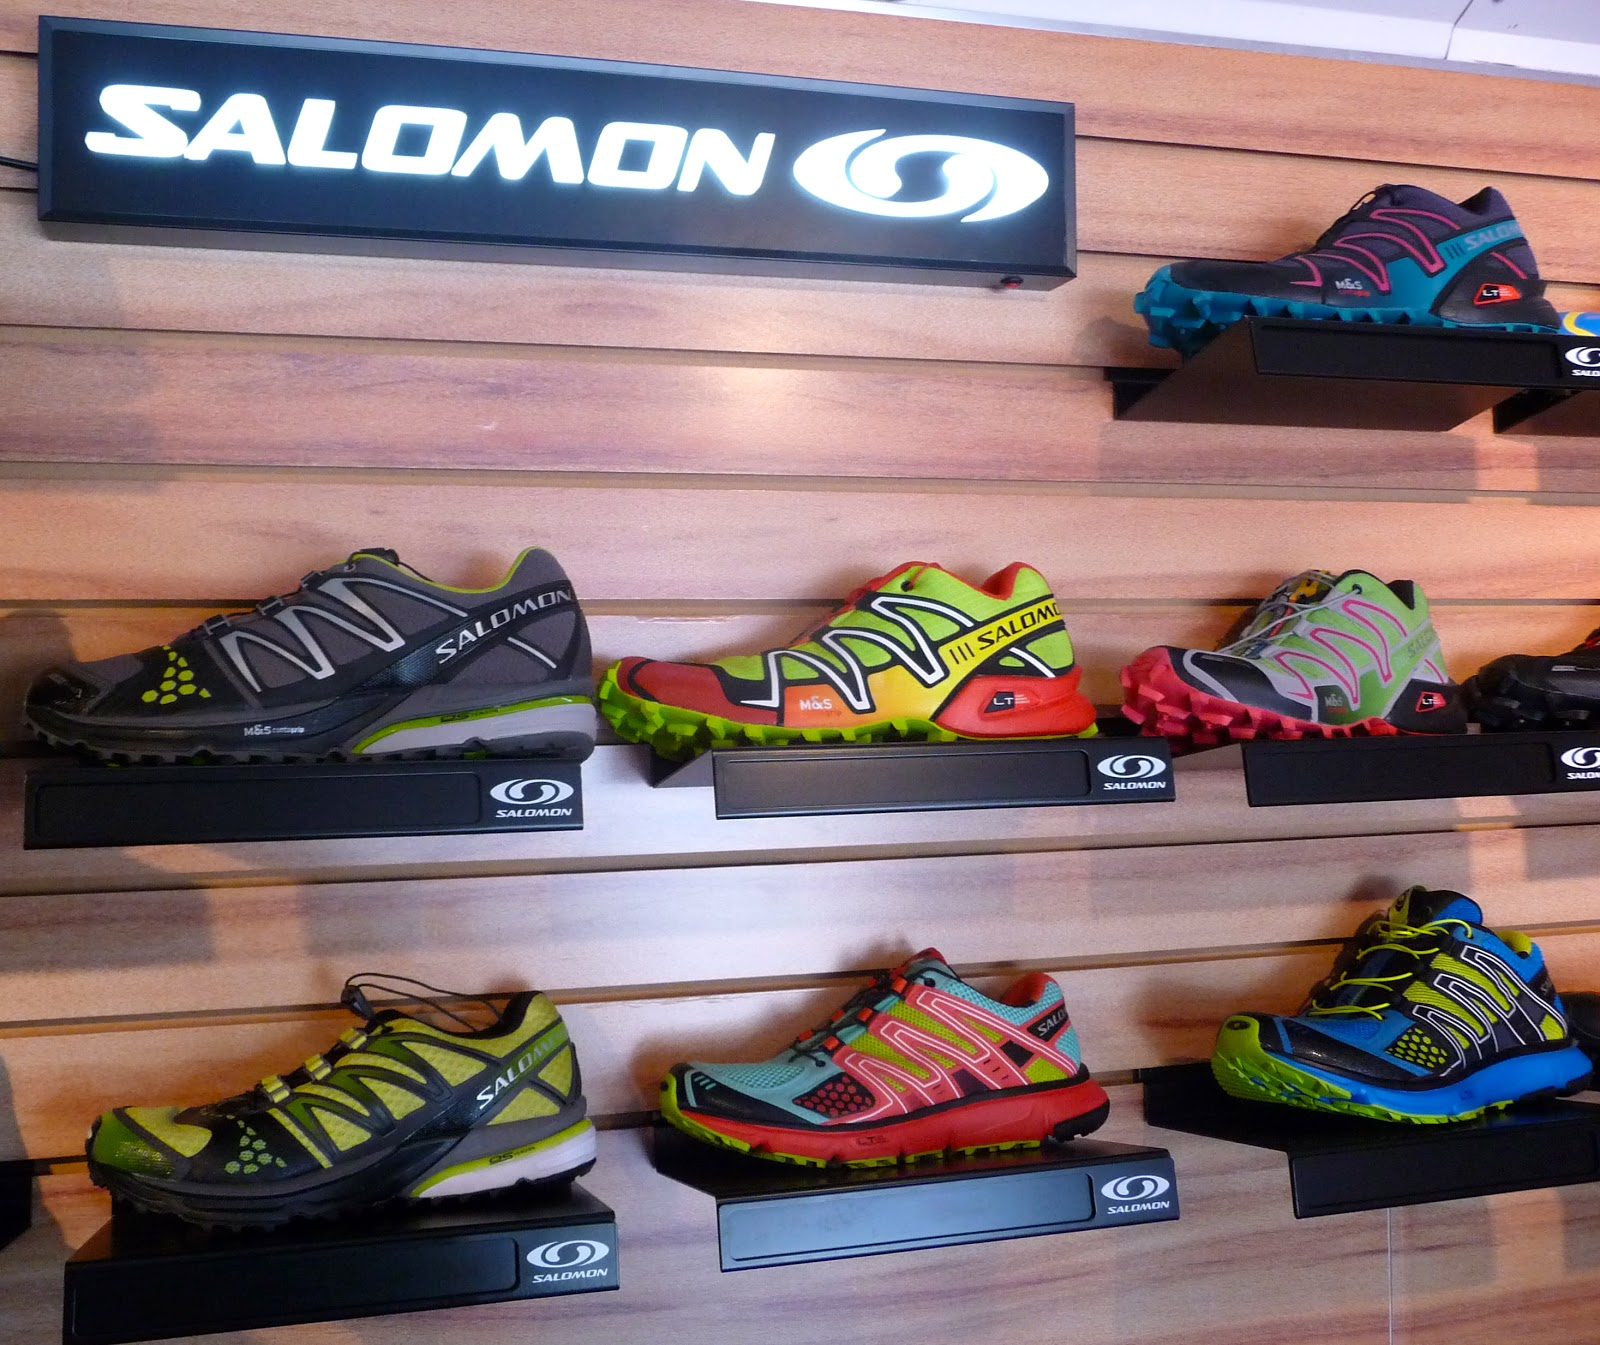 932e34b09e SALOMON TRAIL RUNNING SHOES Hikers PERFORMANCE WEAR SPRING 2013